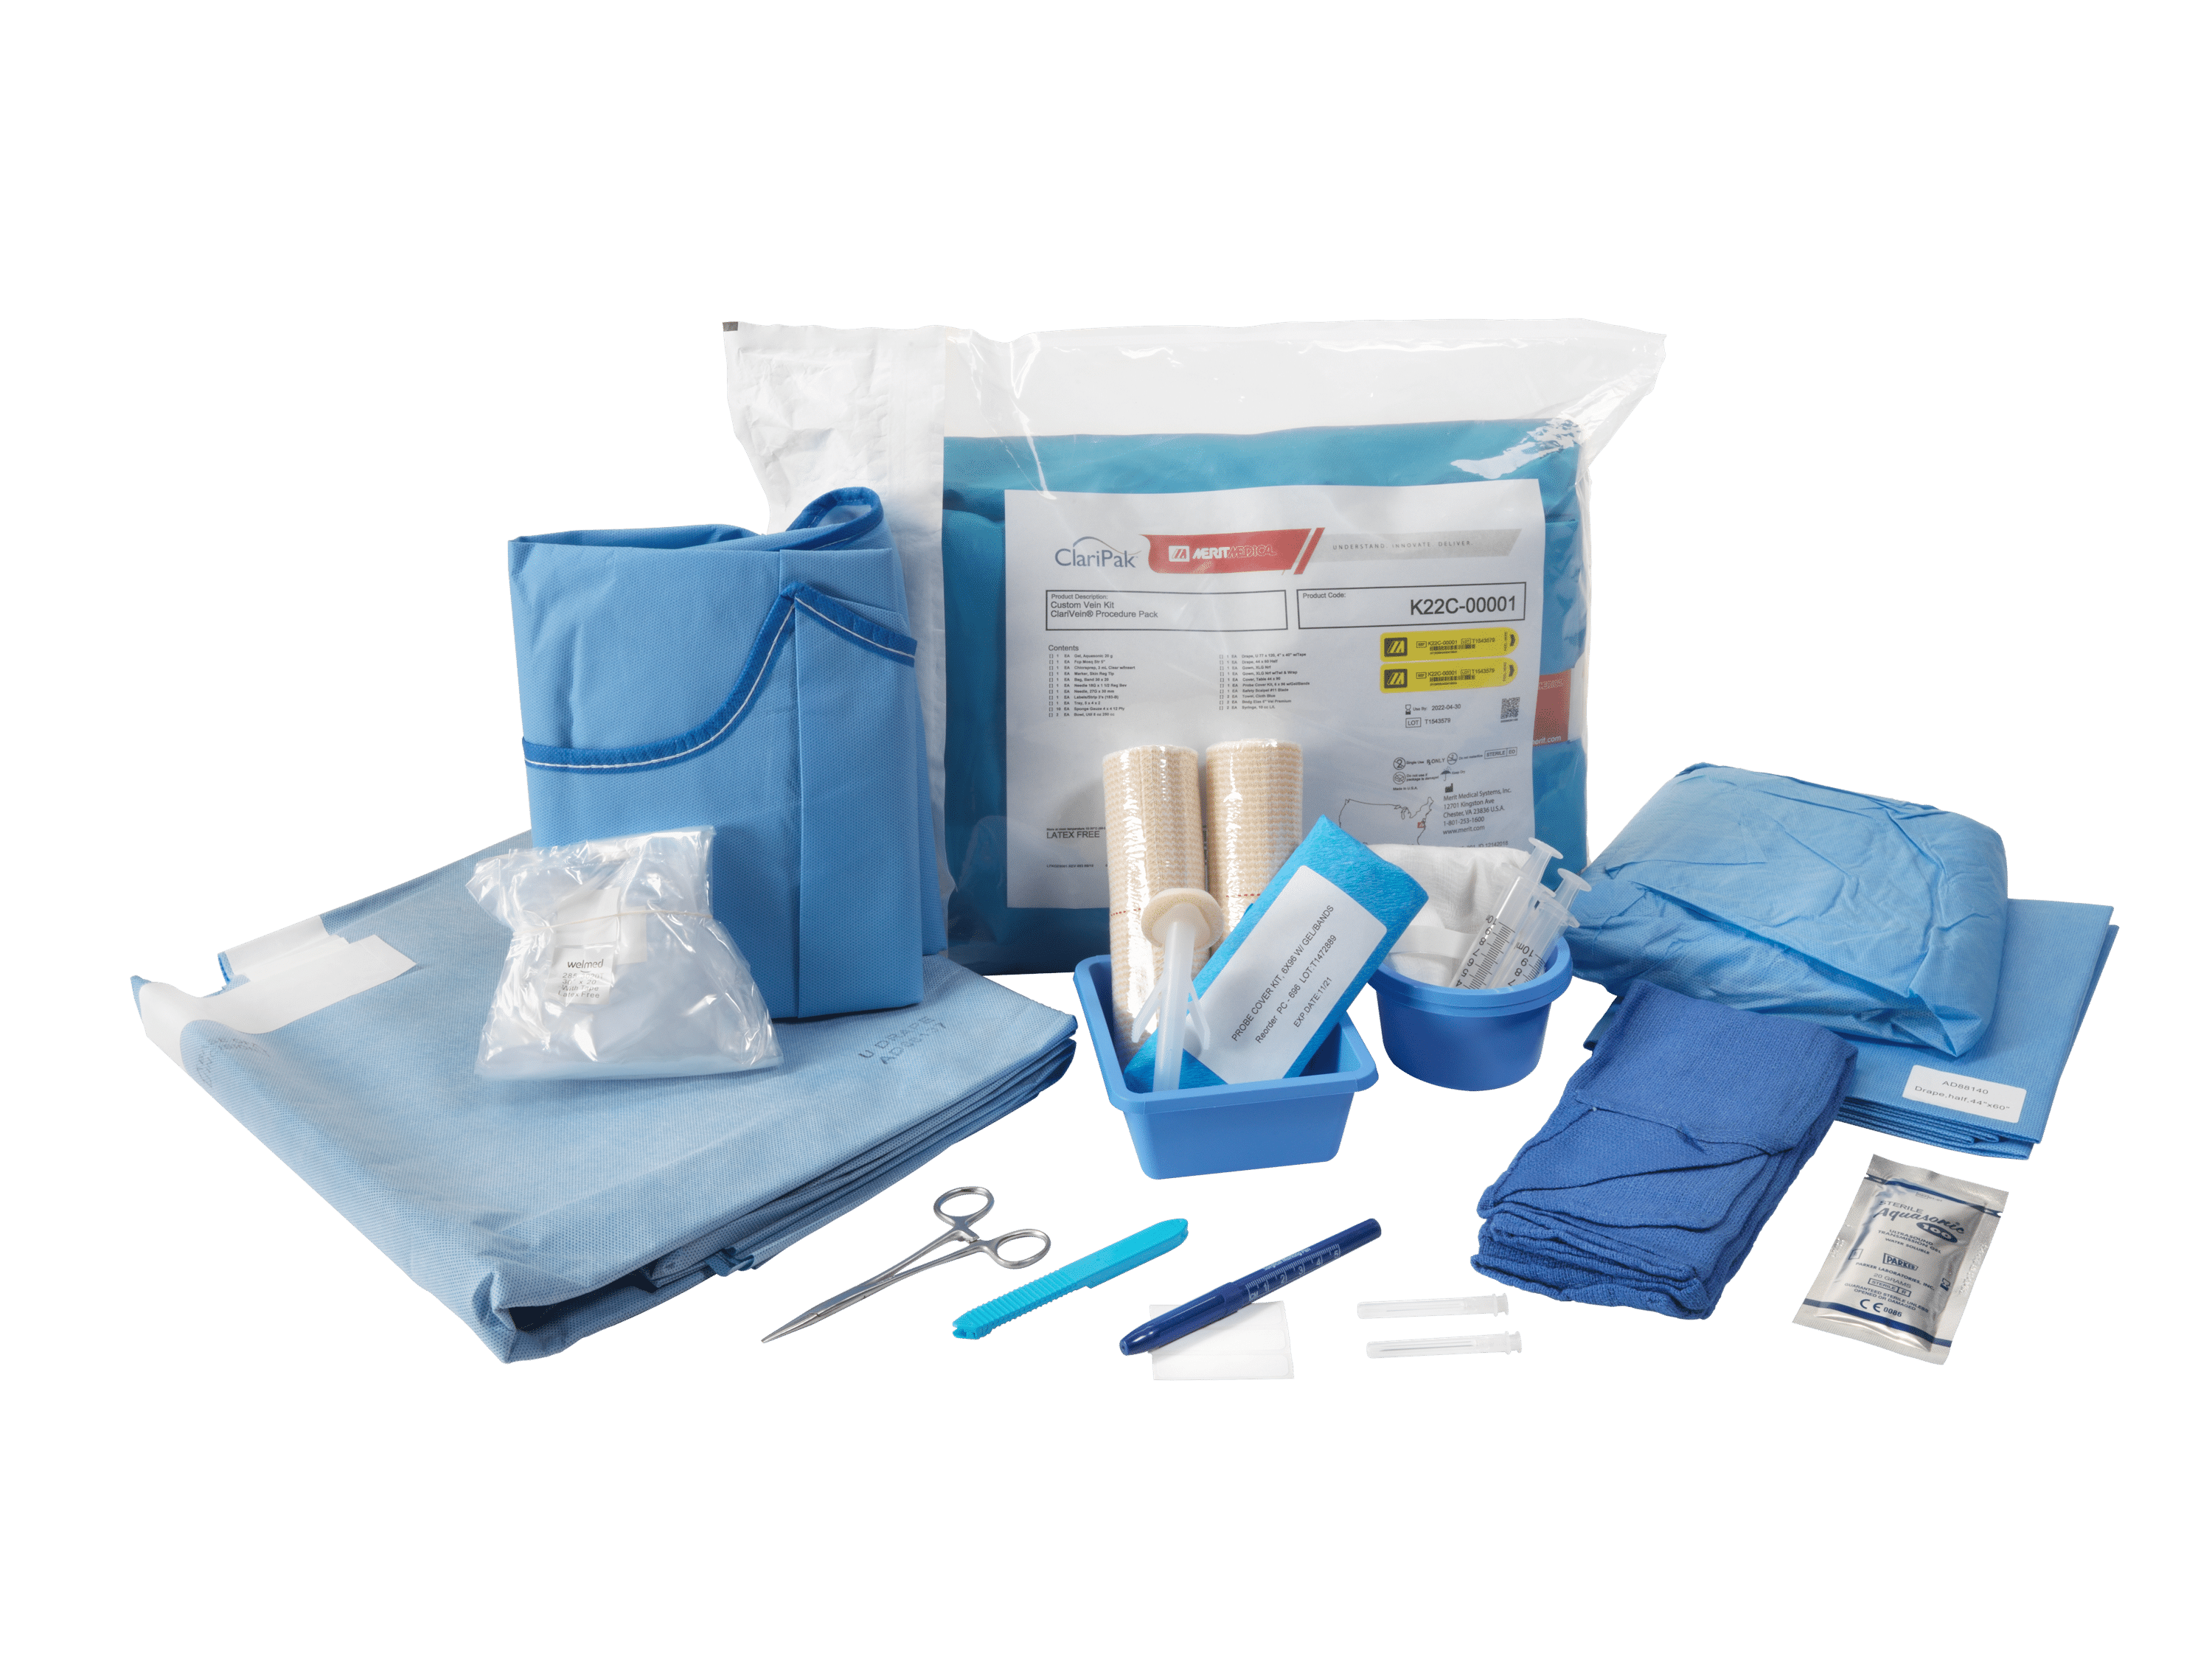 ClariPak Vascular Procedure Kits